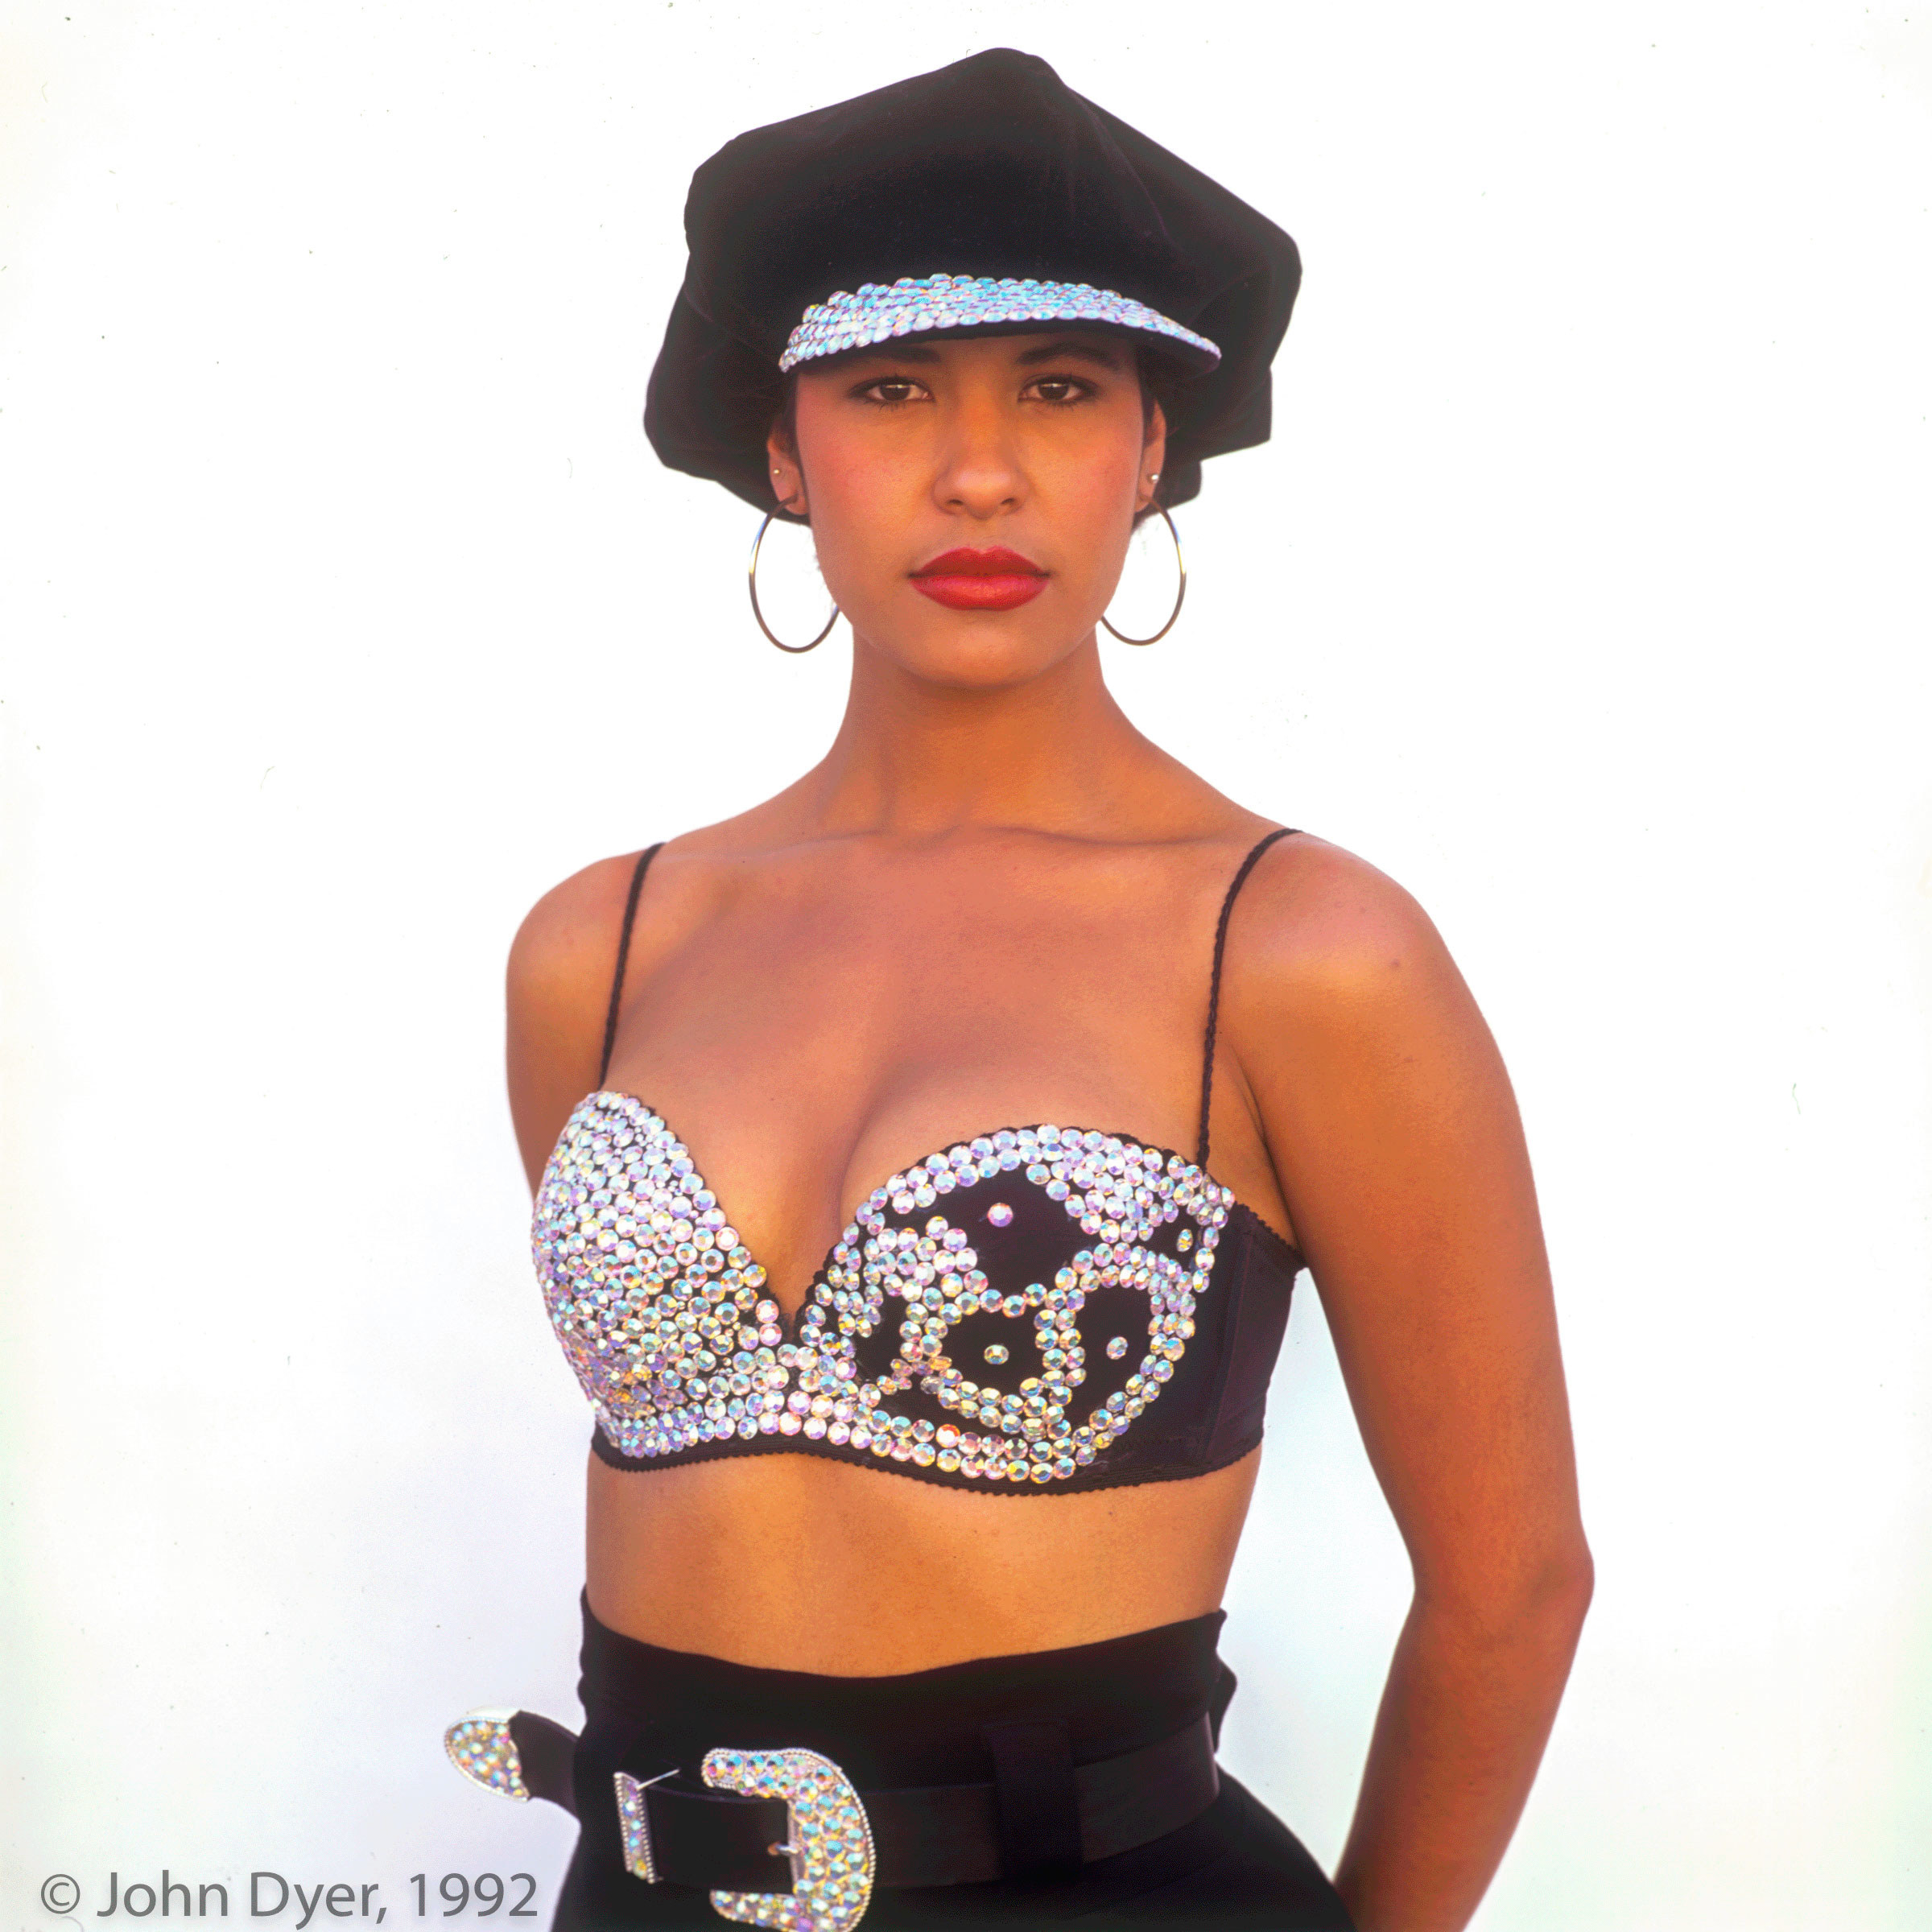 selena quintanilla posing for the camera while standing in front of a white backdrop